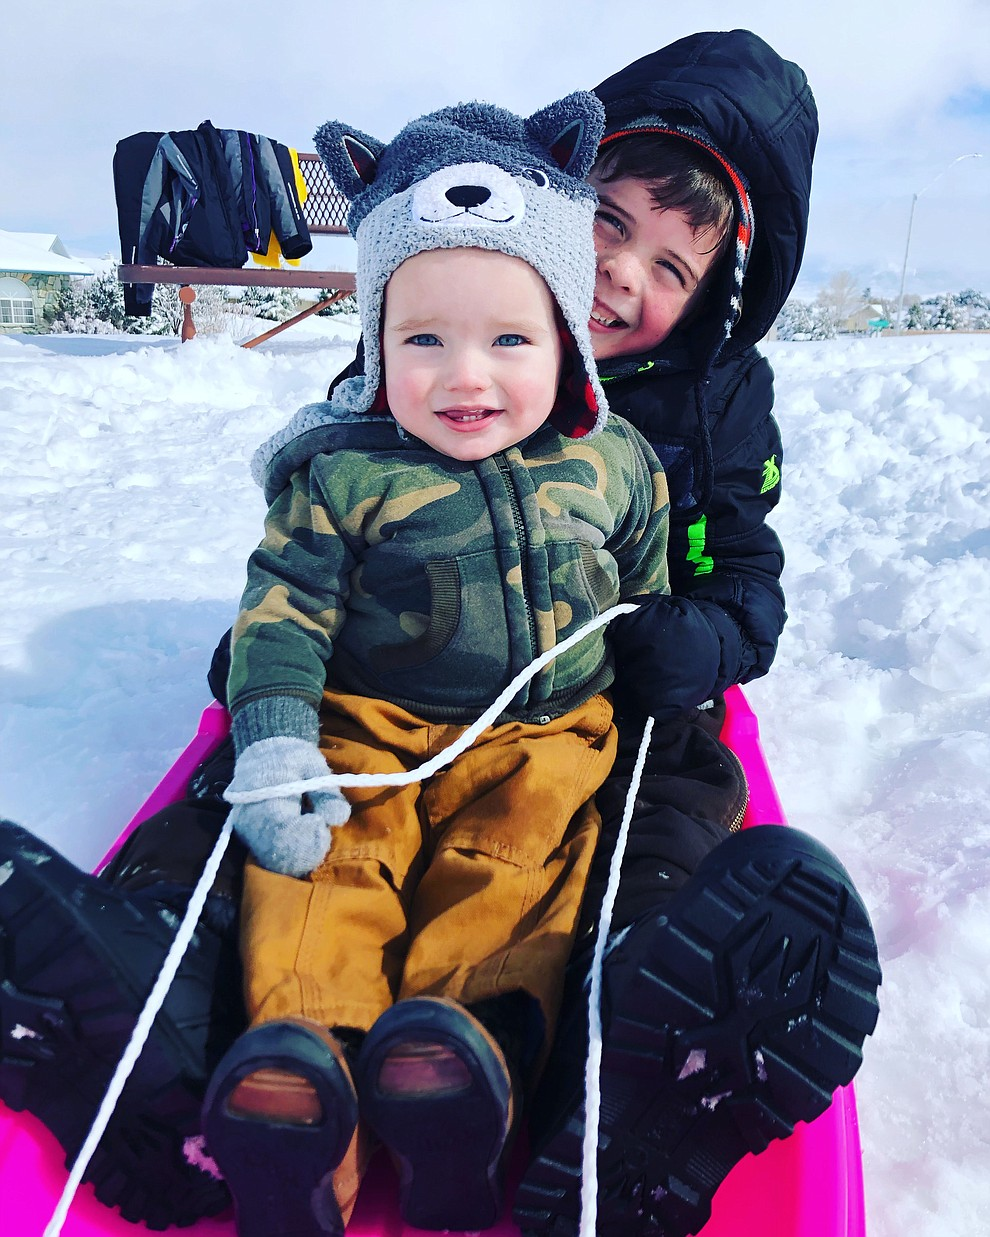 Austin Goad 1 y/o first time sledding with his brother Brantley Goad 6 y/o at Bob Edwards Park in Prescott Valley. 2/22/19